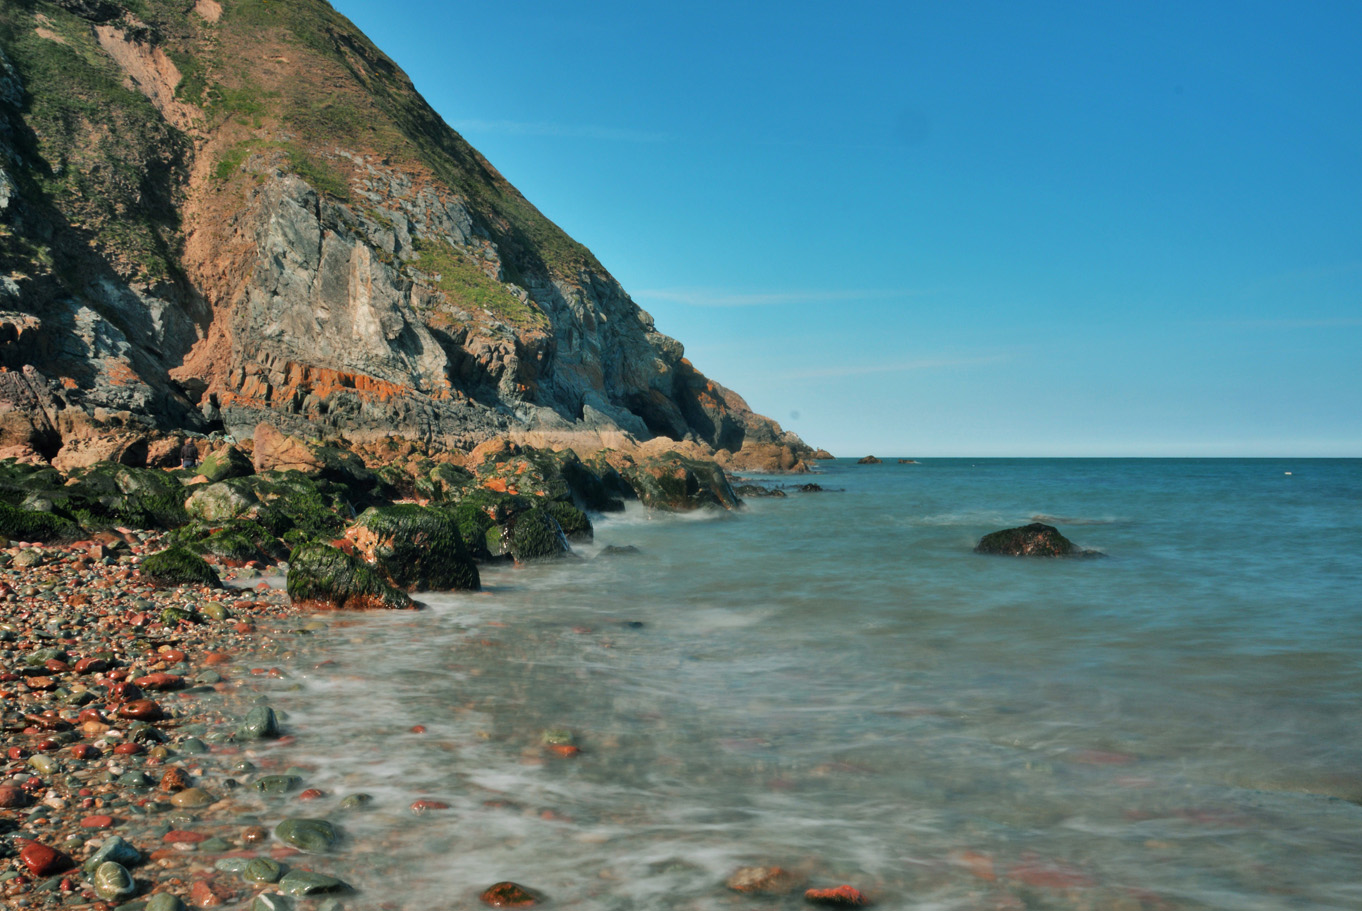 Quiet beach in Howth, just in front of the lighthouse